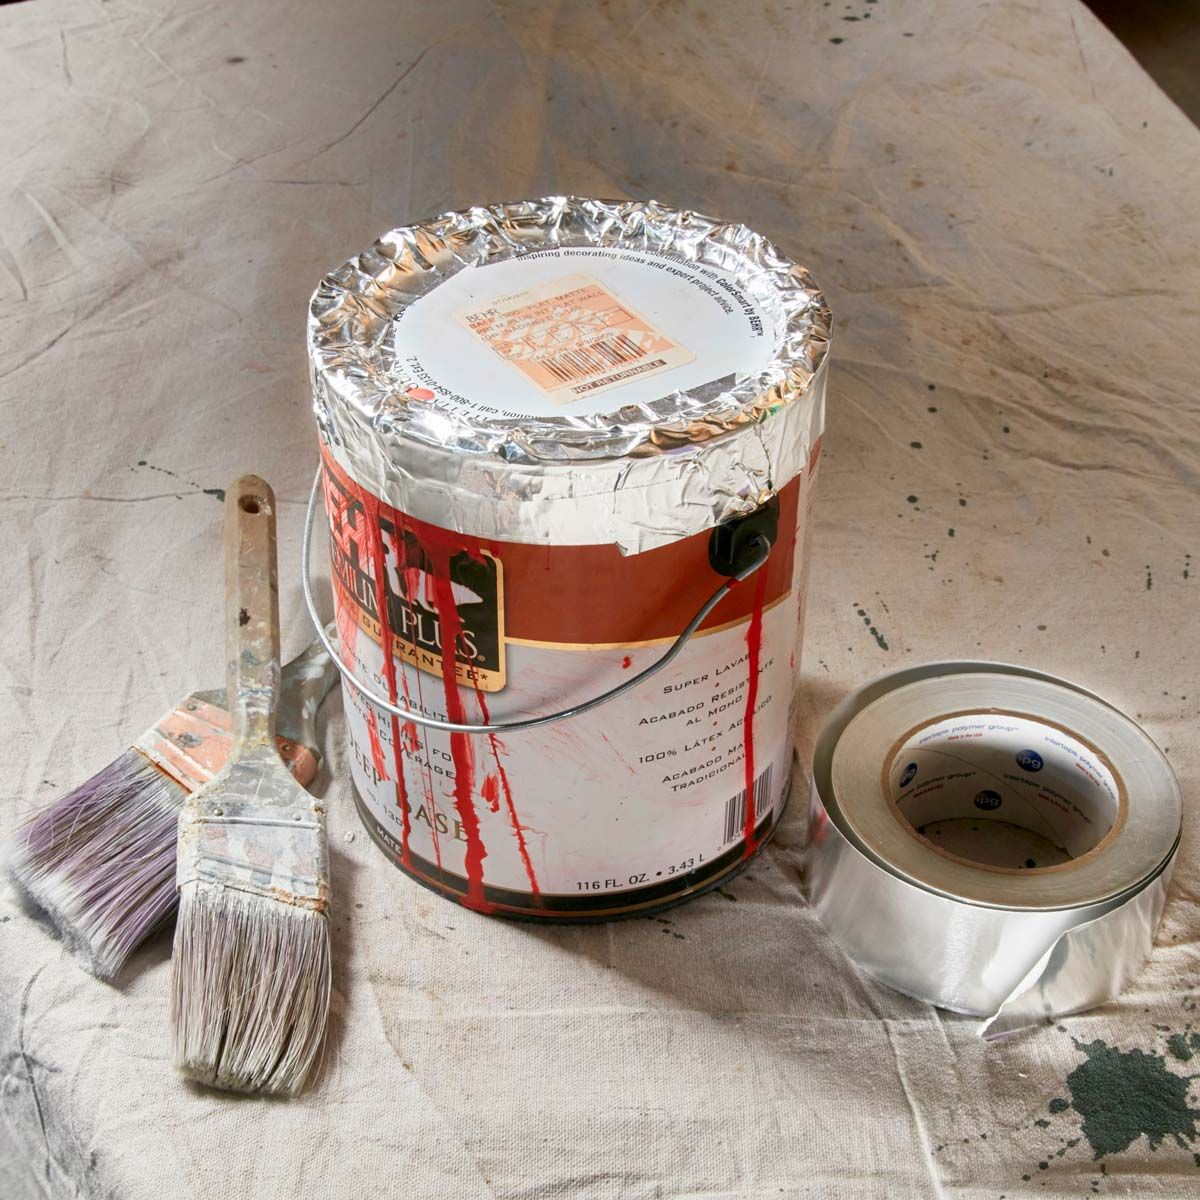 Foil Tape Paint Saver Tape Painting Handyman Projects Painting Tips